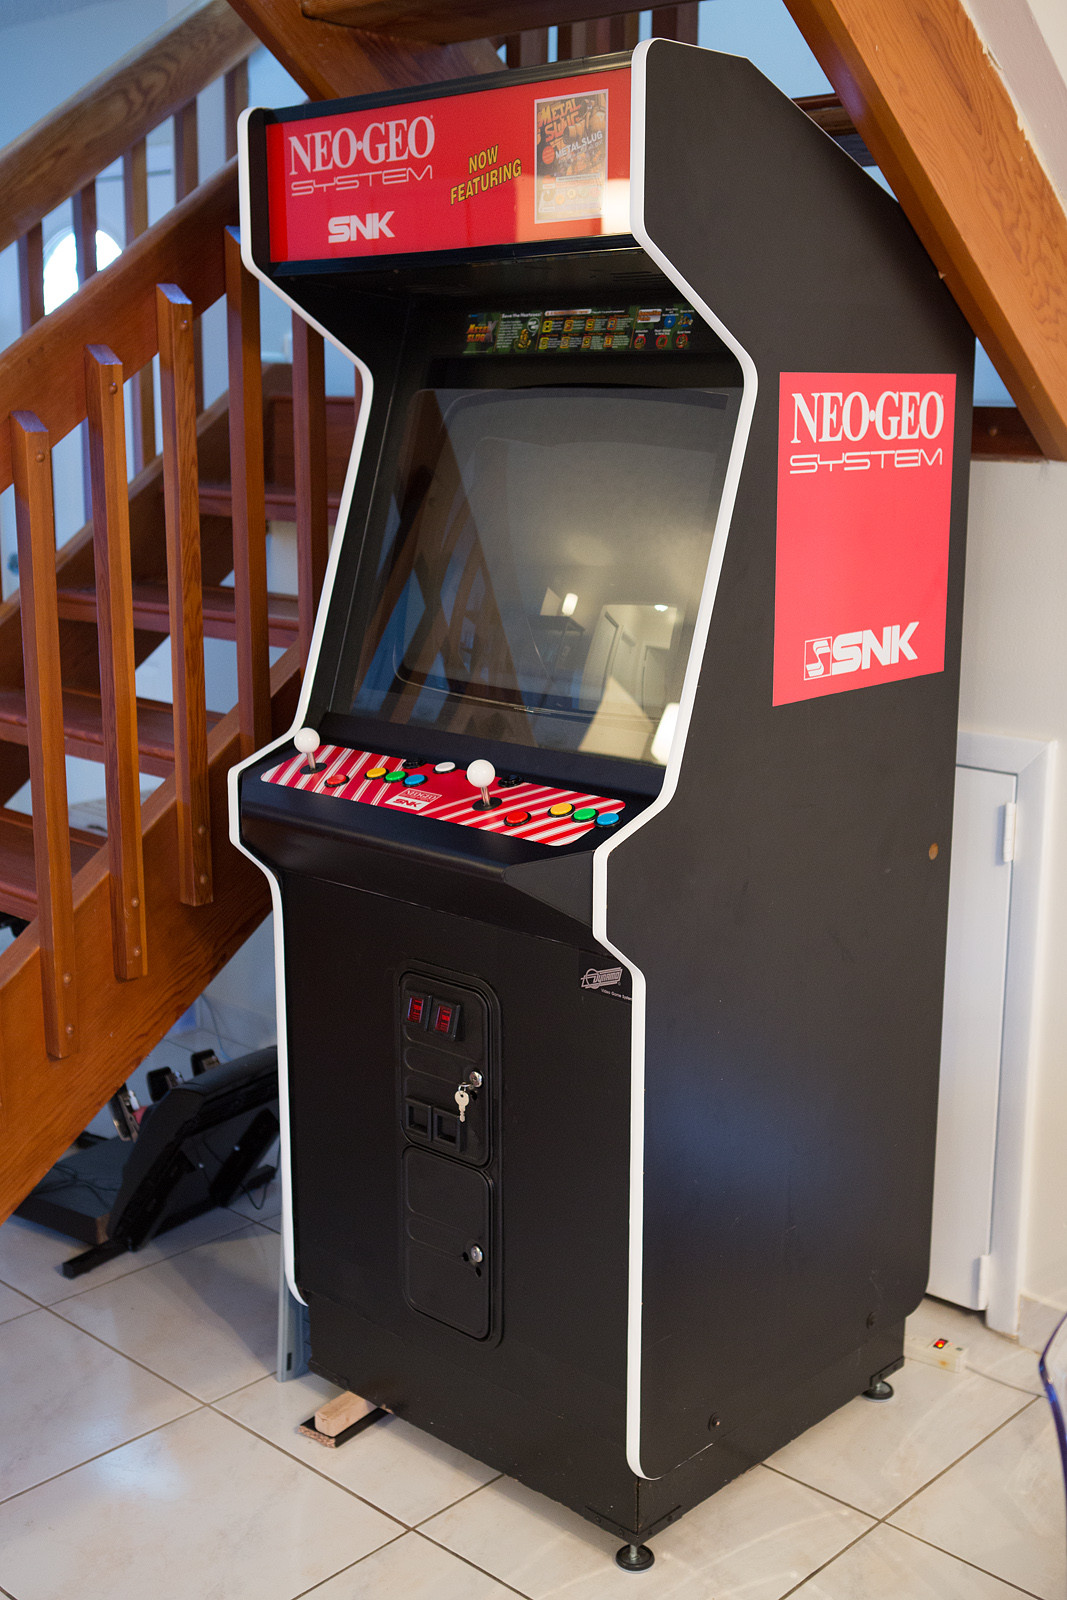 Neo Geo 1 Slot Conversion Dynamo Coin Op Videogame